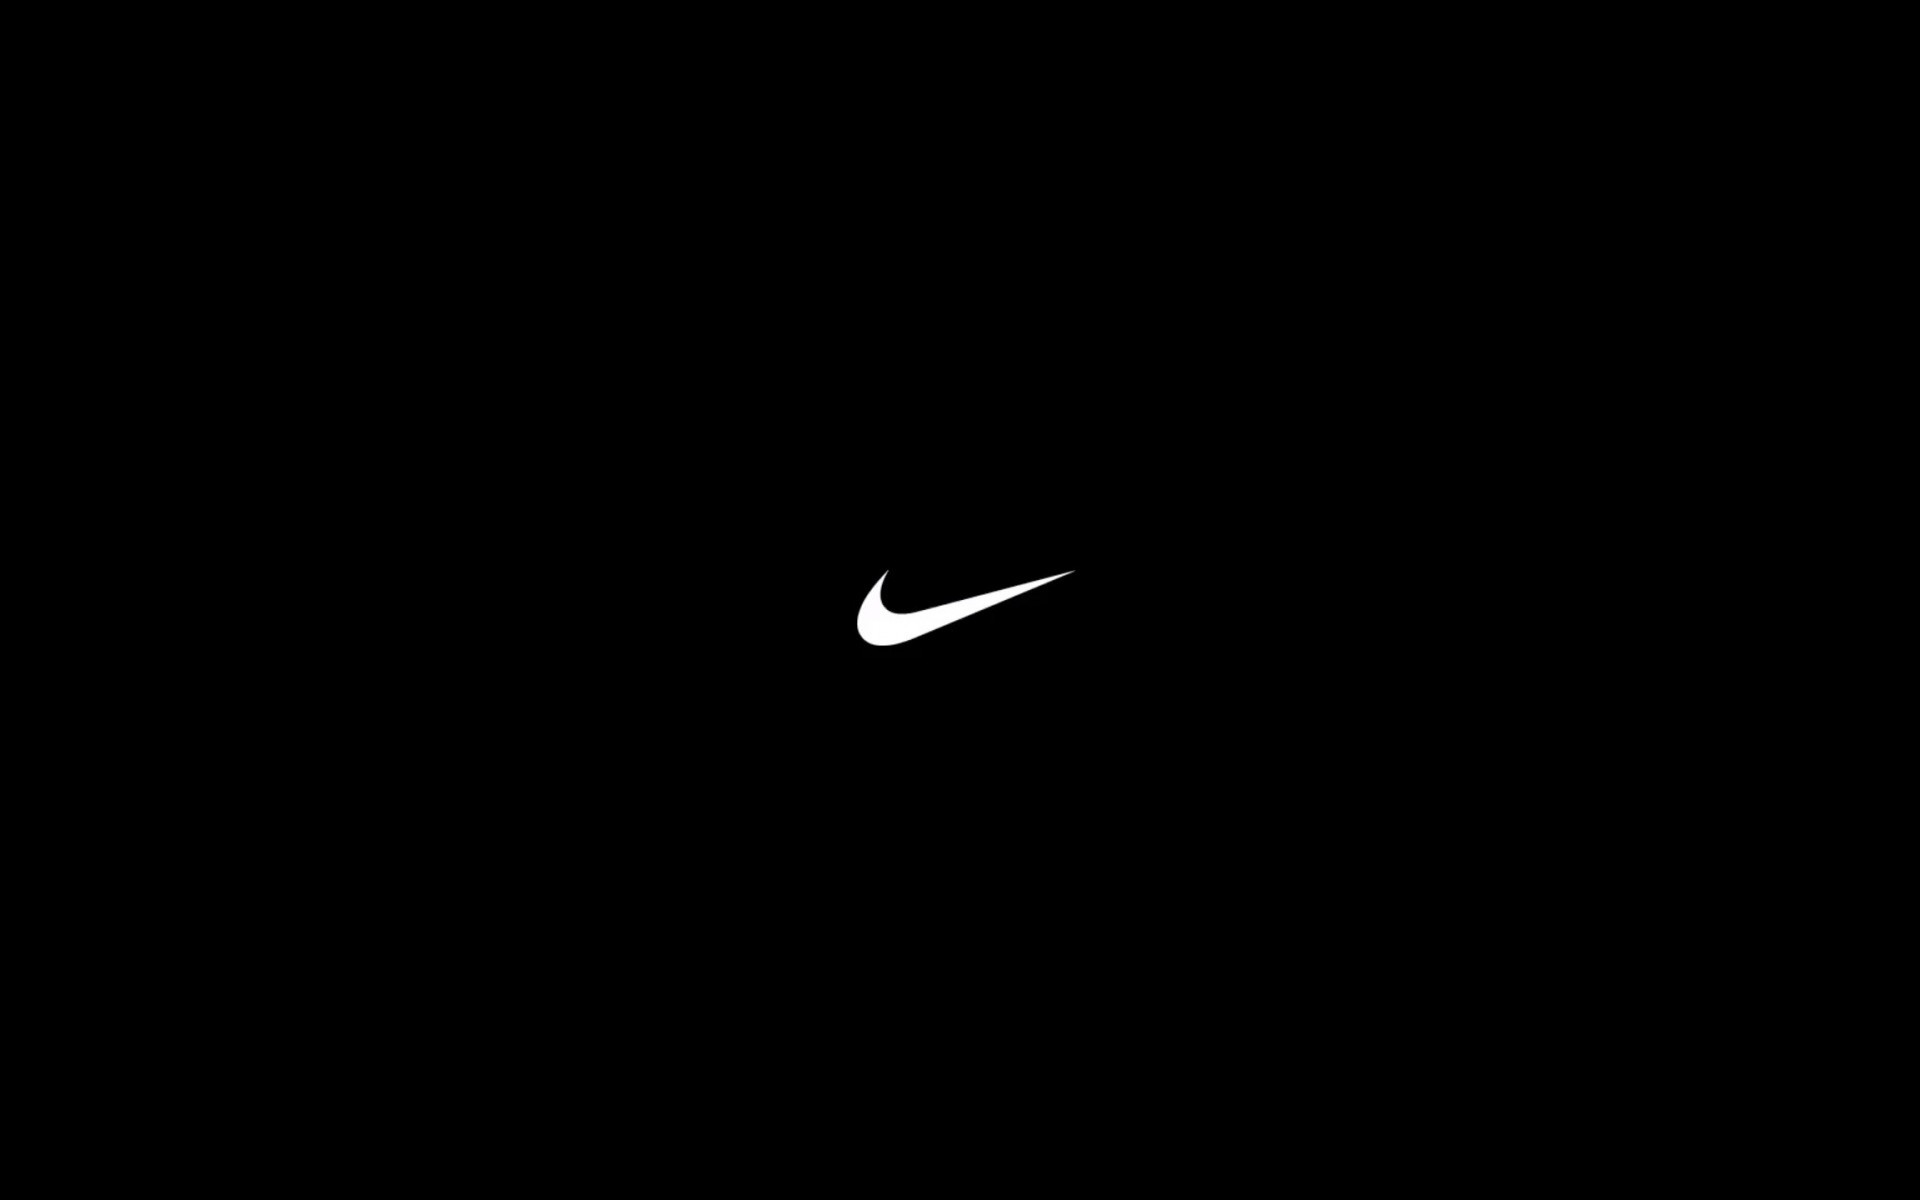 1920x1200  Nike Swoosh. How to set wallpaper on your desktop? Click the  download link from above and set the wallpaper on the desktop from your OS.